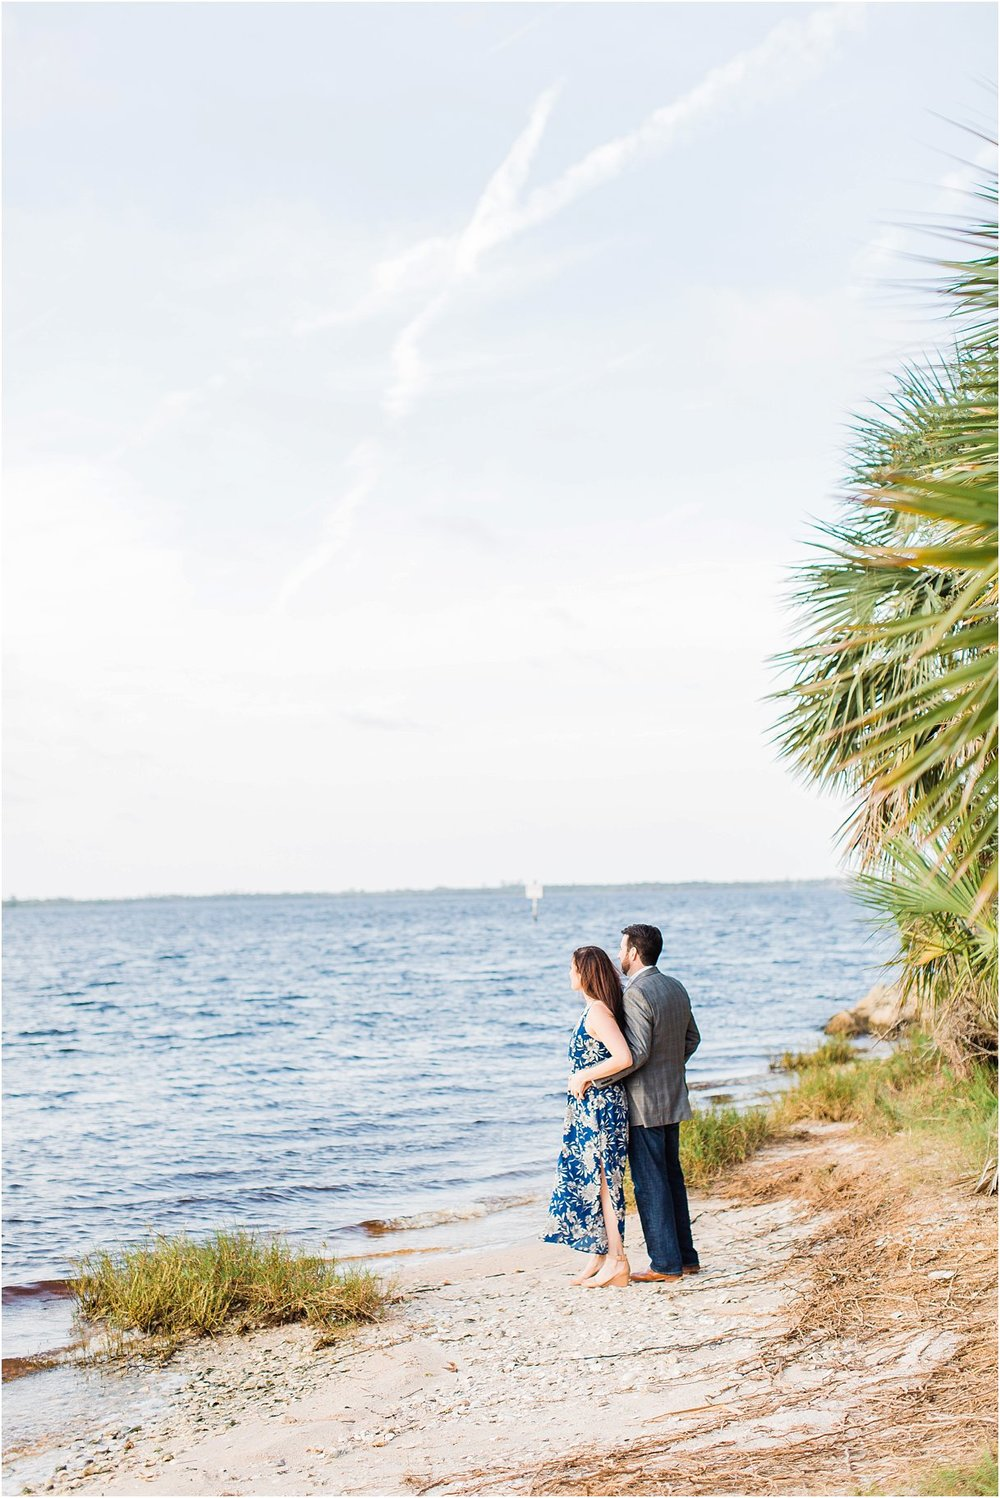 Tomoka Park Ormond Beach Florida Engagement Session Orlando Wedding Photographer PSJ Photography12.jpg